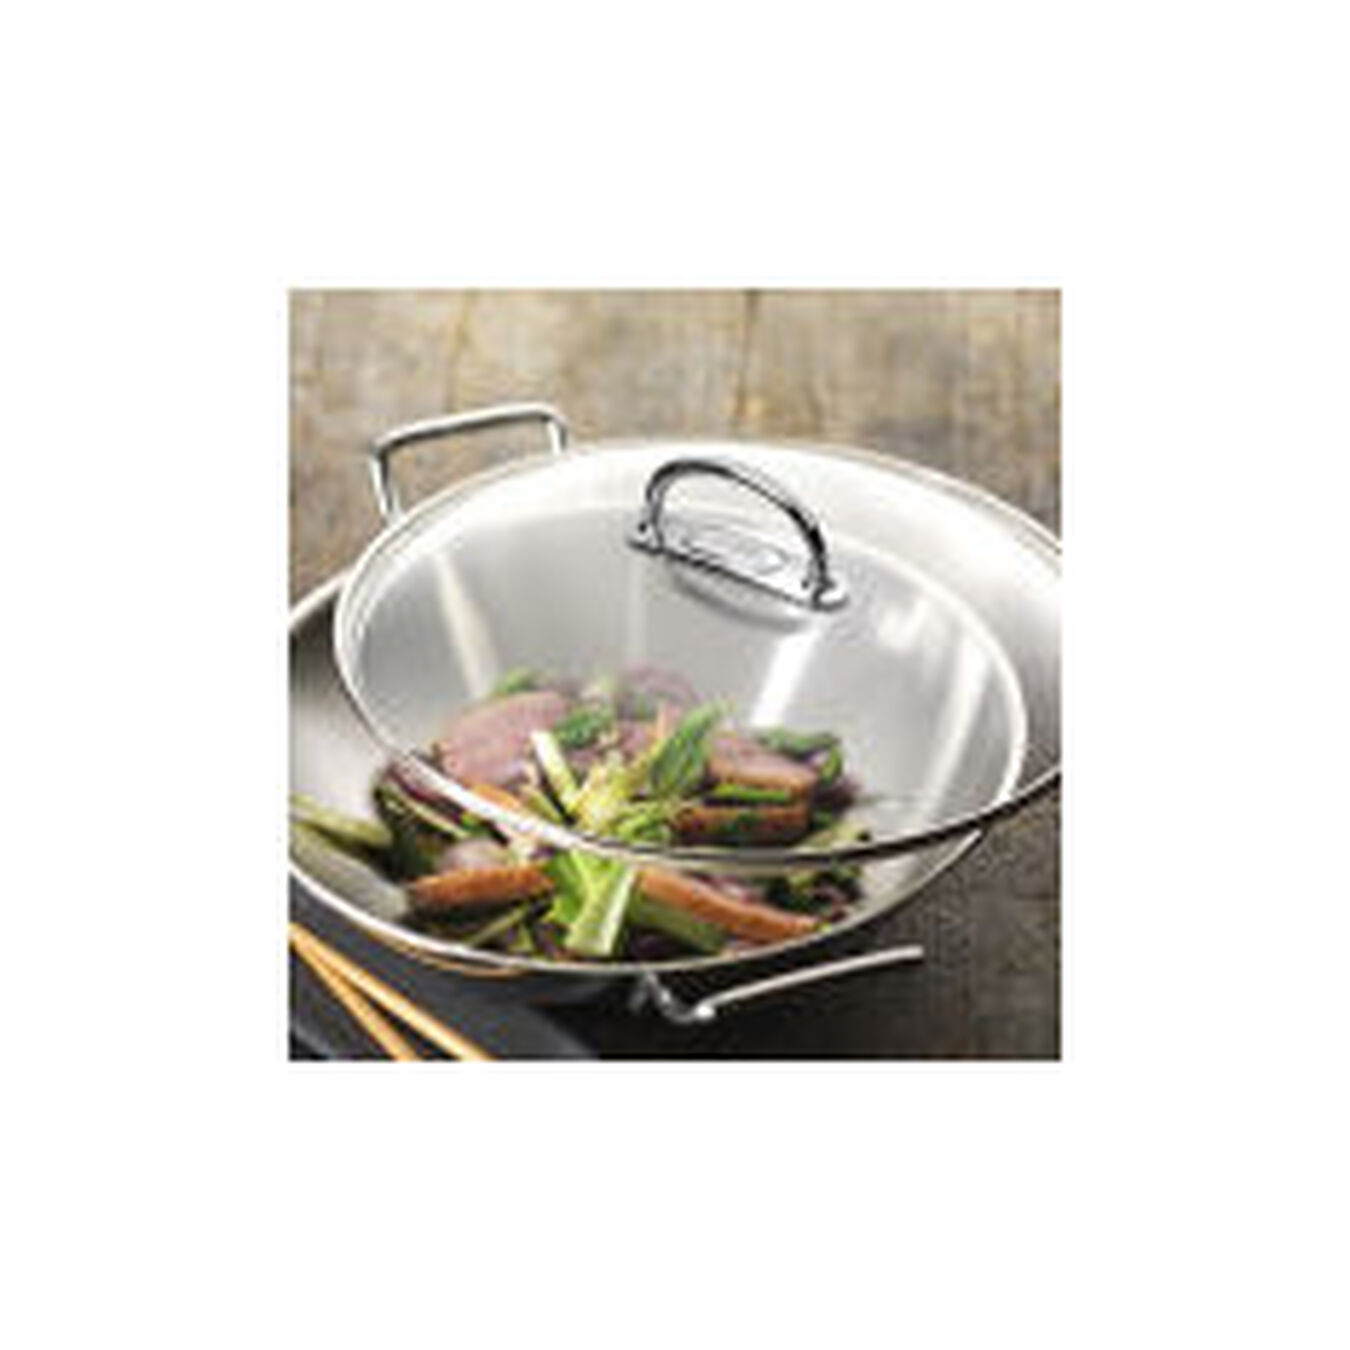 36 cm / 14 inch 18/10 Stainless Steel Wok,,large 2